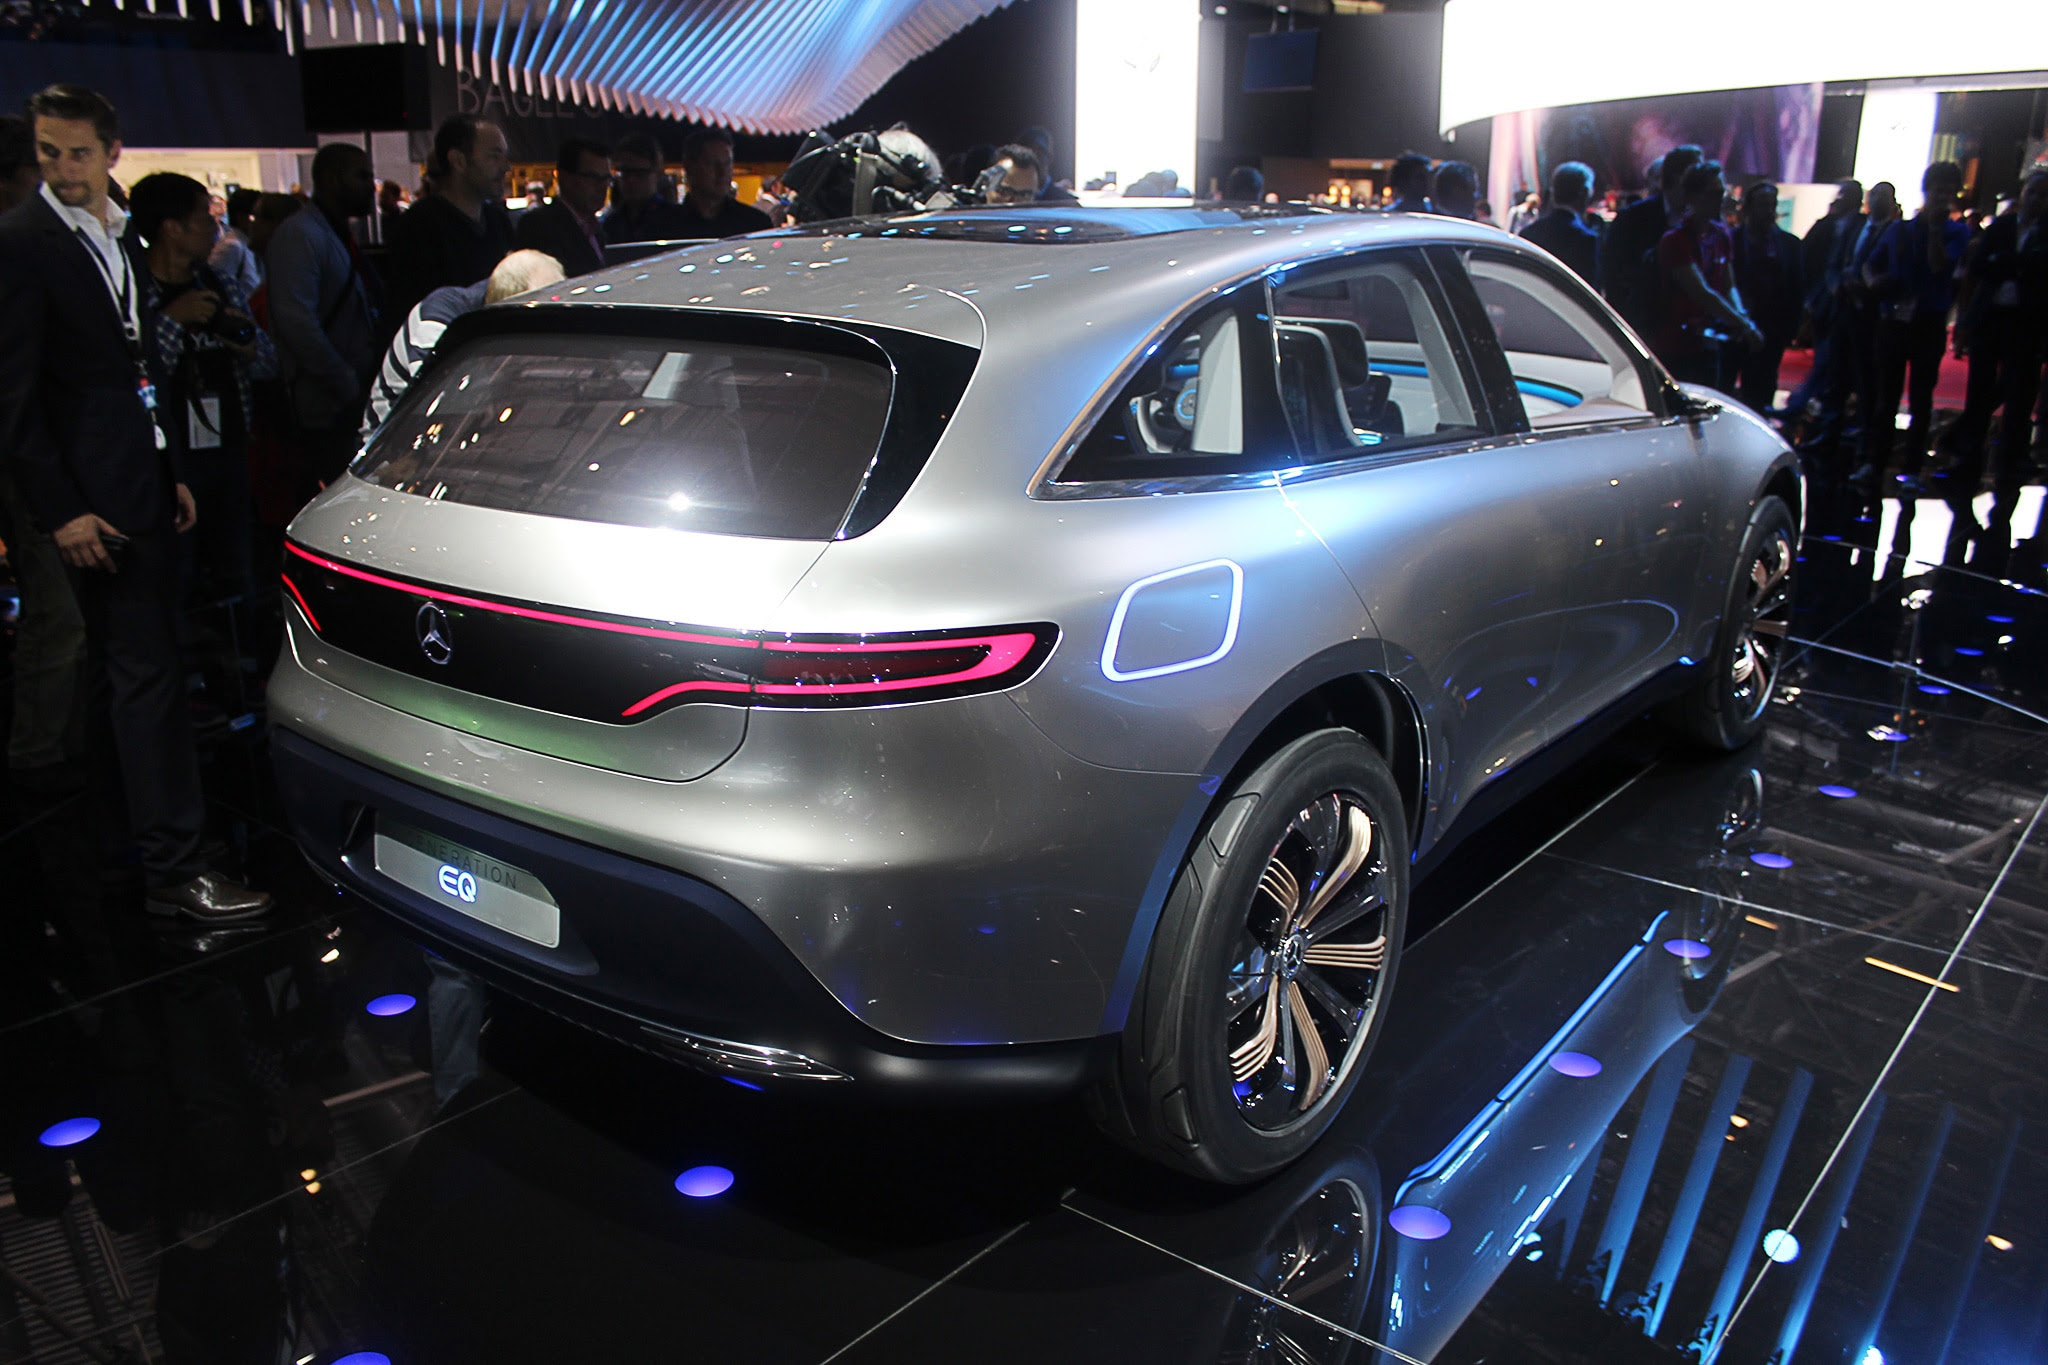 Mercedes-Benz Reveals Electric Generation EQ Concept SUV ...